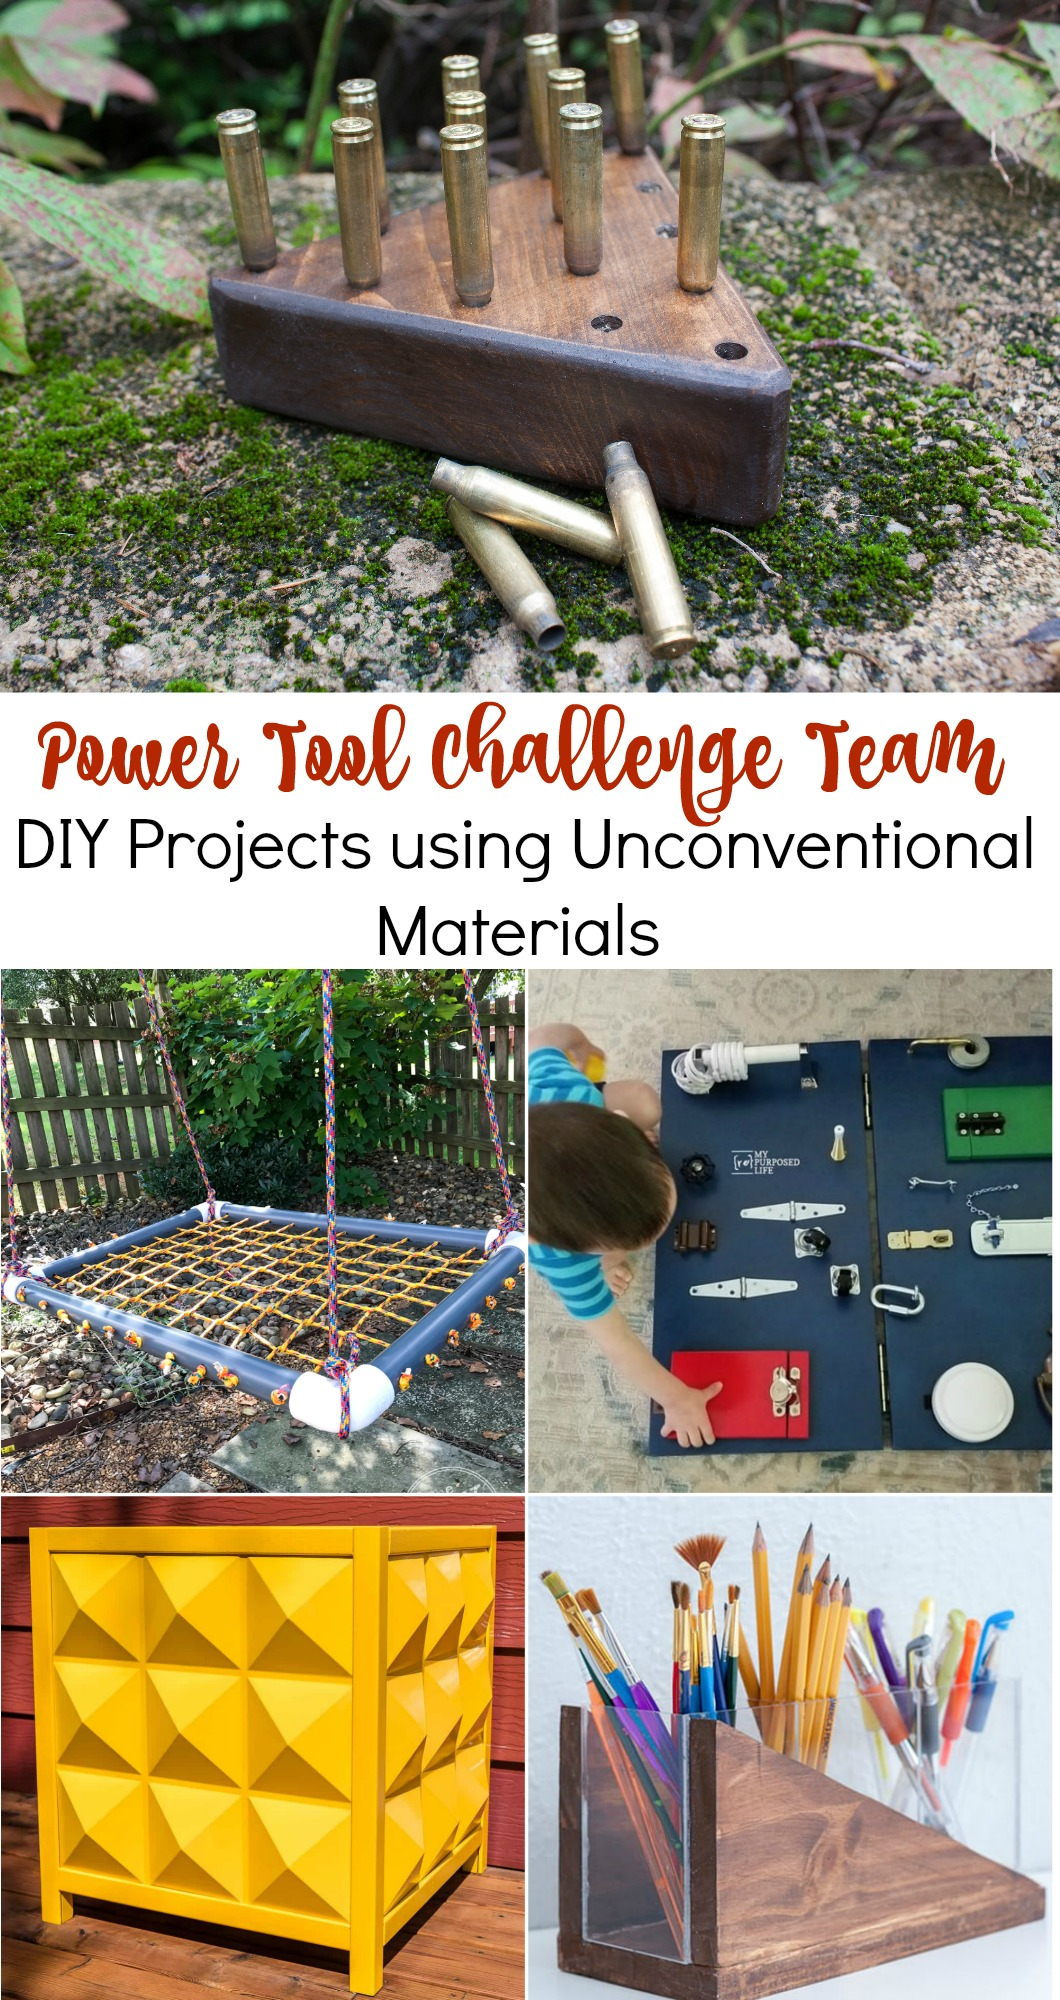 Awesome DIY Creative Projects using Unconventional materials. #diy #powertoolchallenge #platformswing #busyboard #outdoorplanter #deskstorage #diyprojects #homedecor